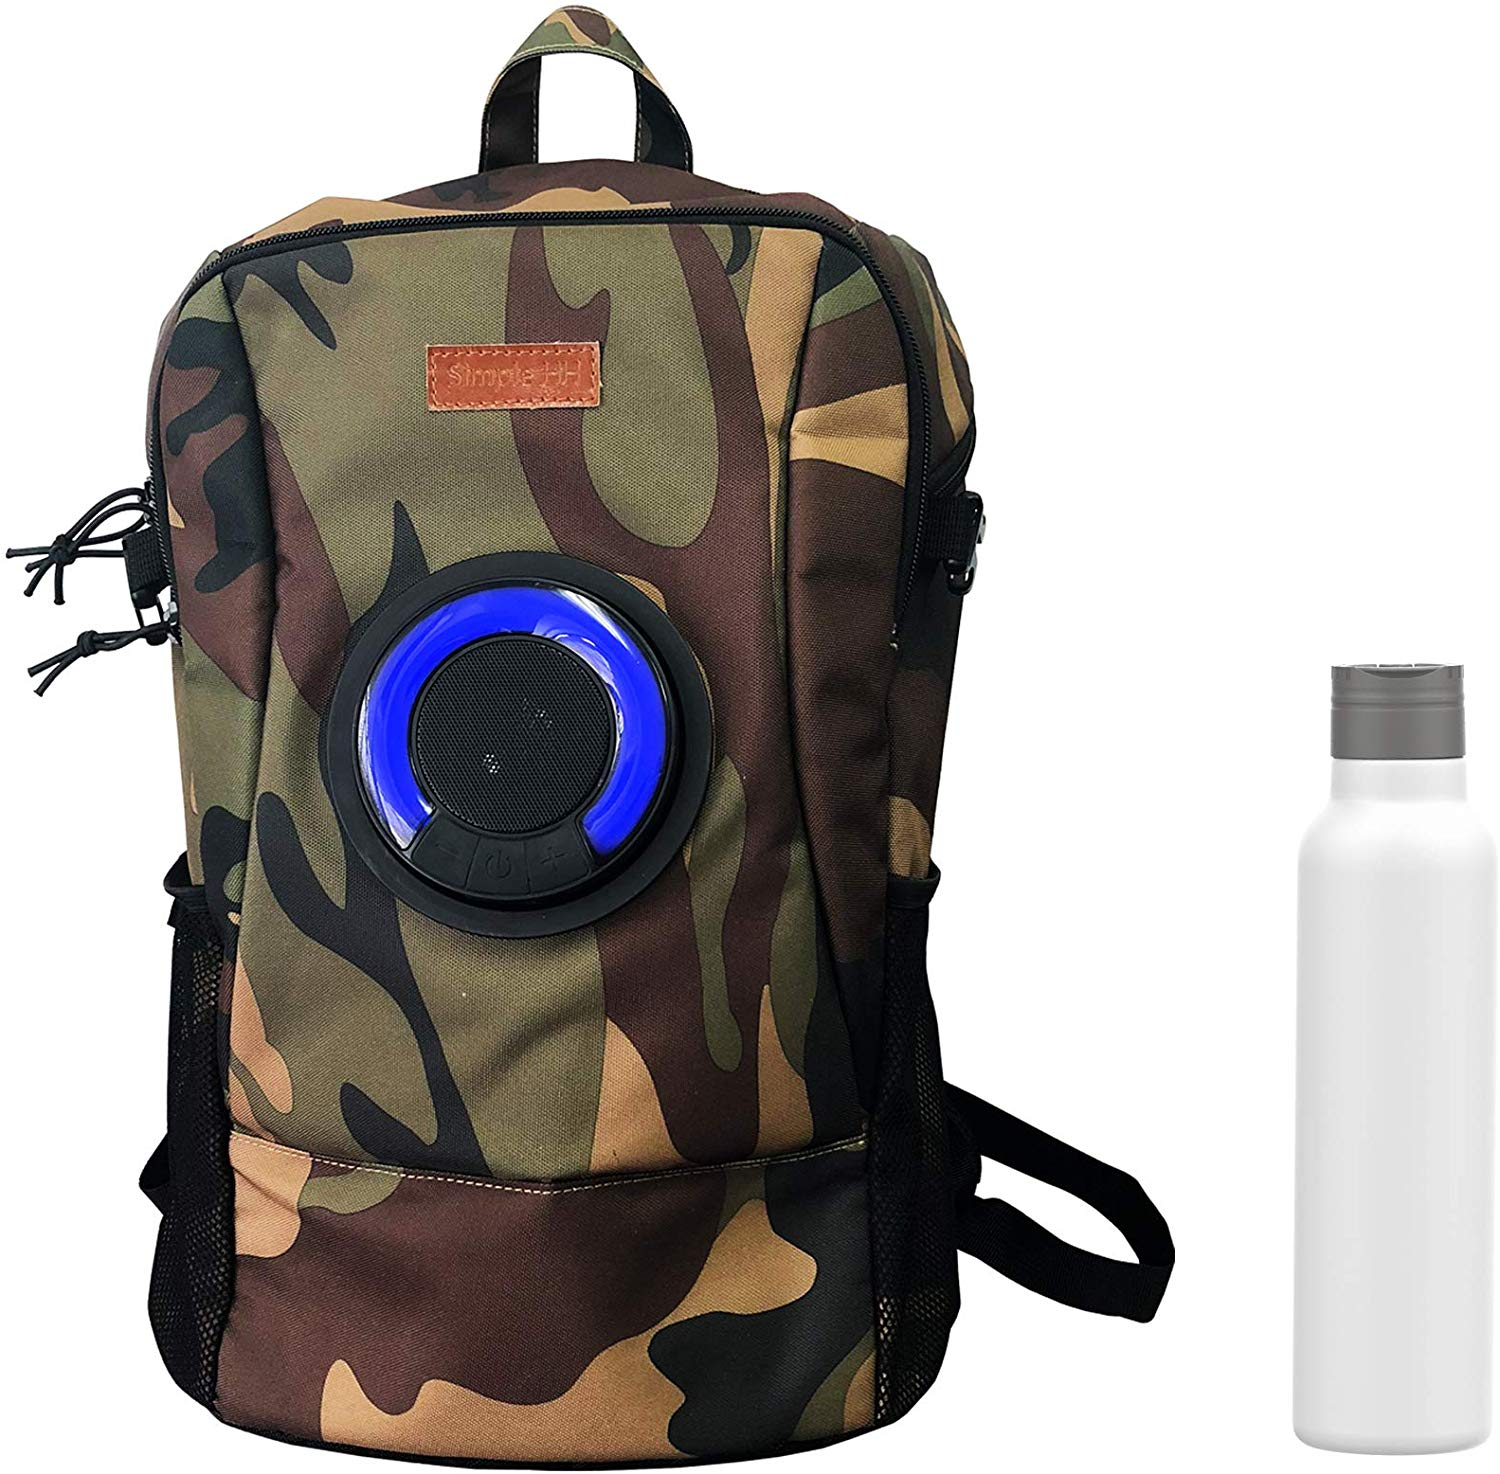 Simple HH Travel Laptop Backpack with Speakers